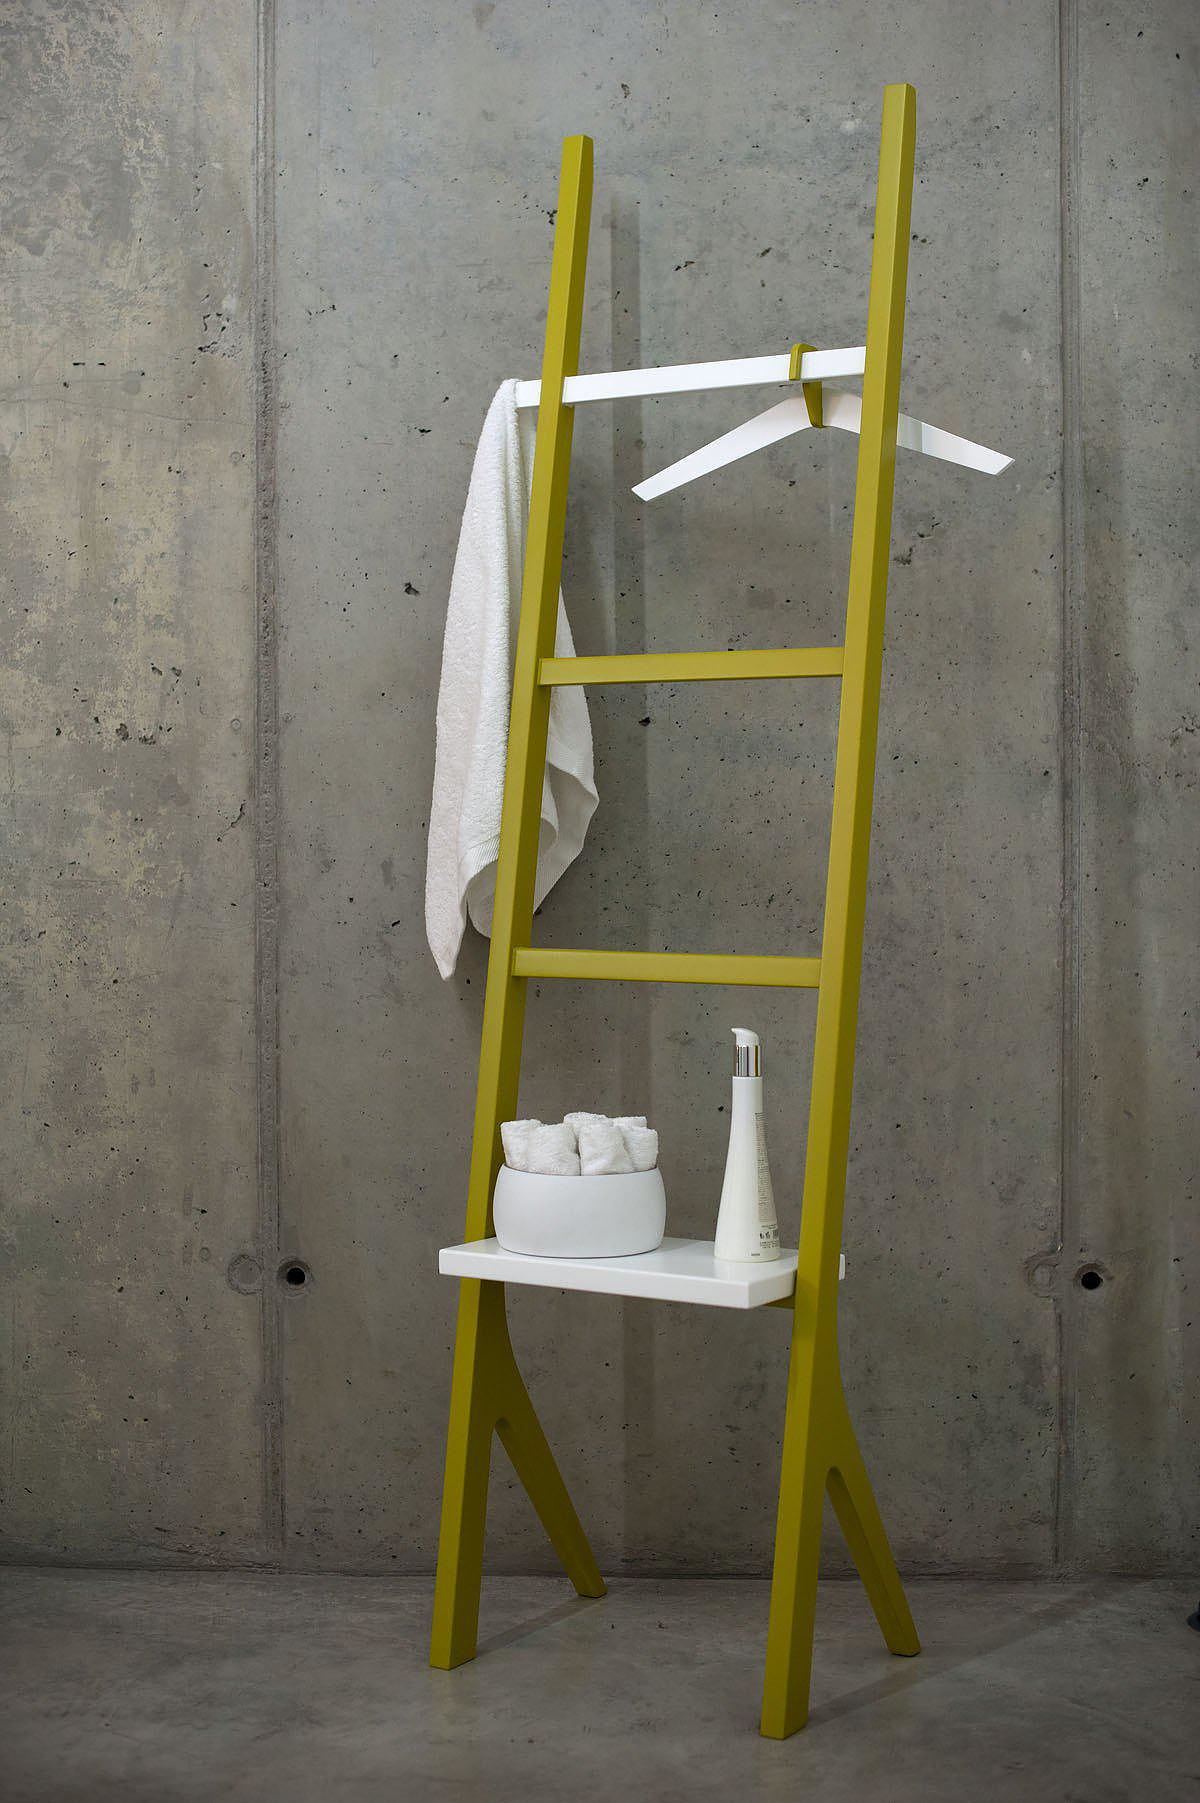 YPSY Shelving Unit by Two.Six, reinterpreting the role of a ladder.